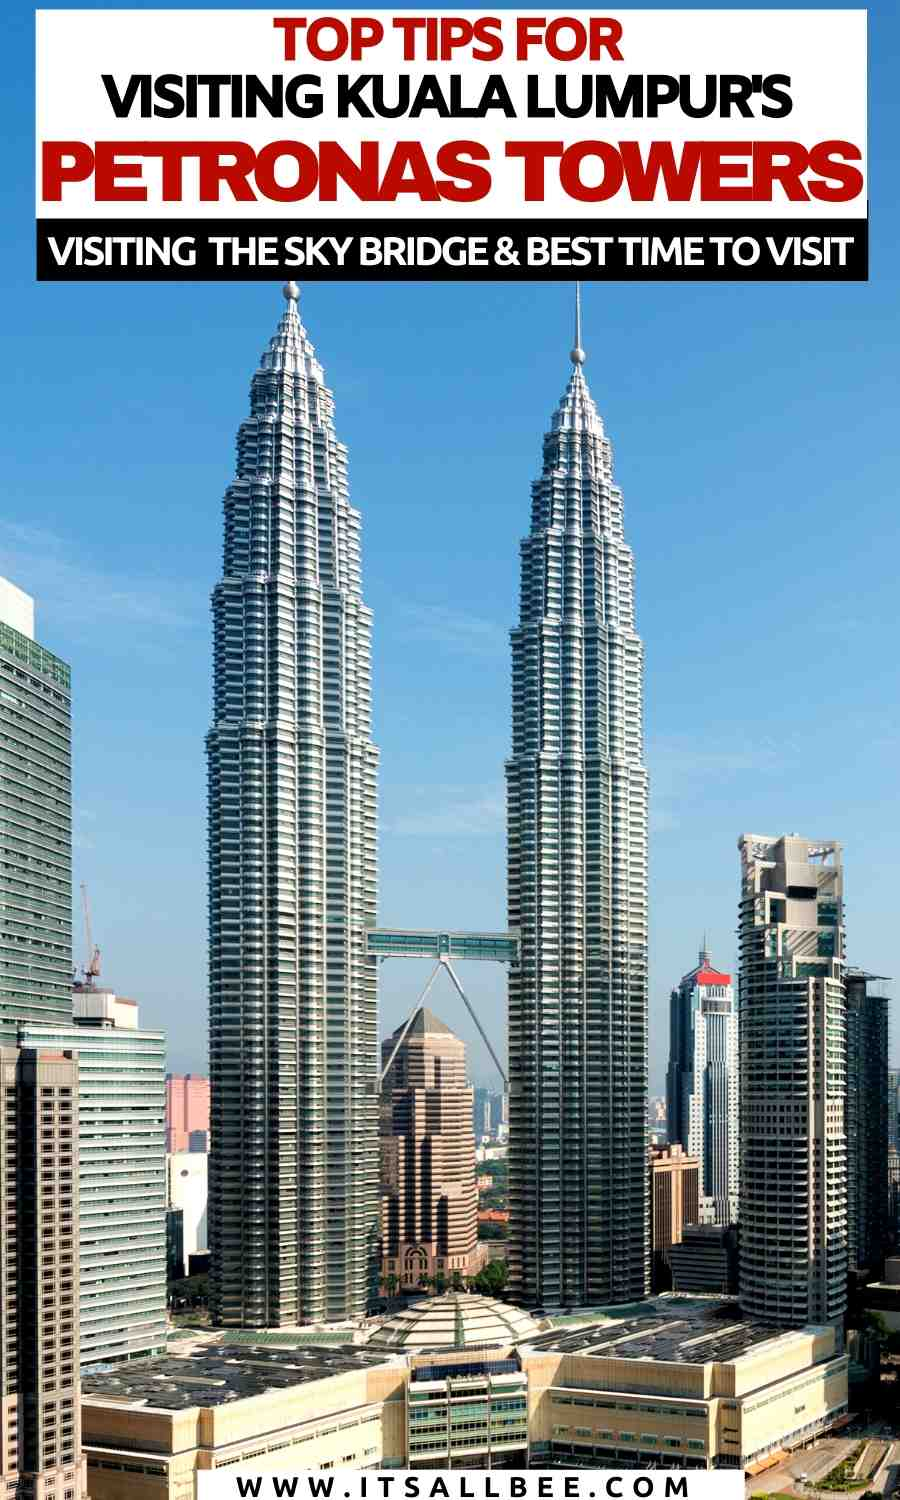 Tips for visiting the petronas towers in KL